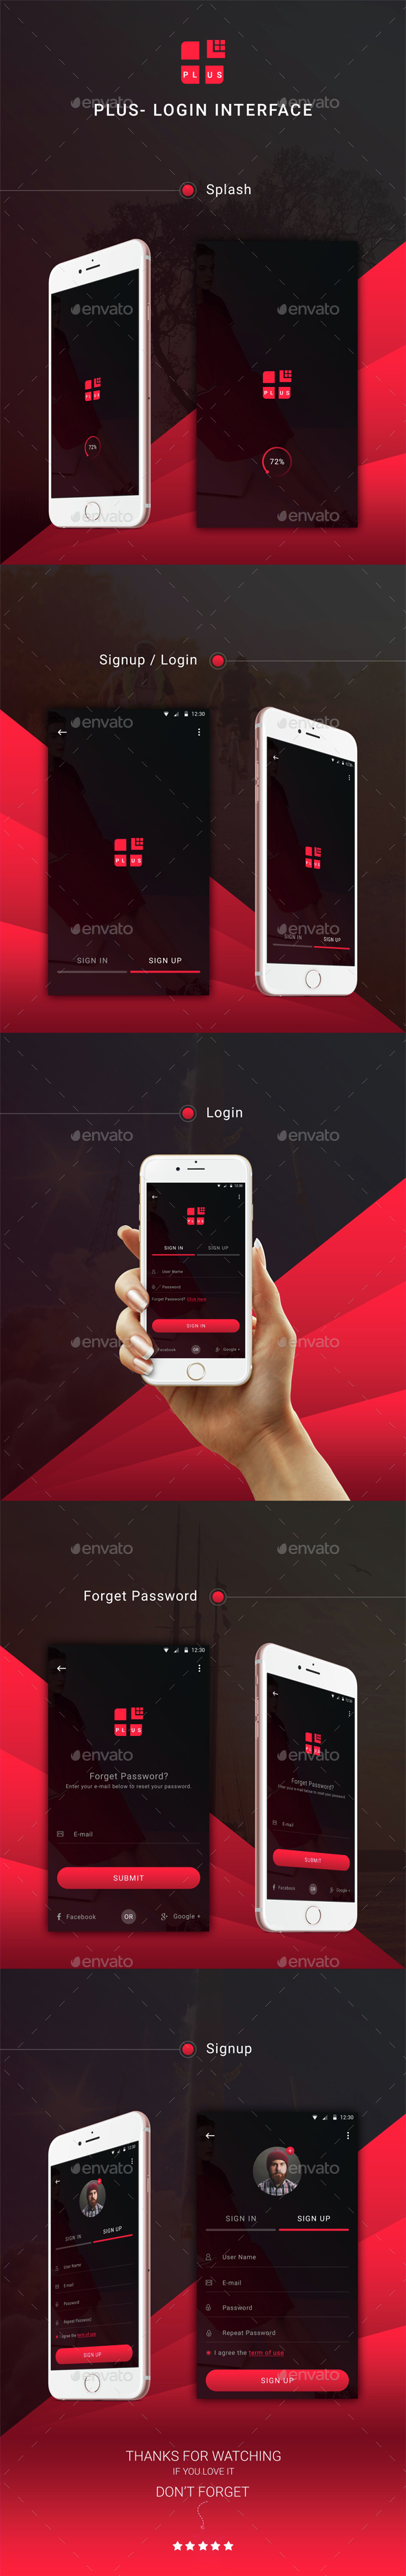 Plus - Login Interface (User Interfaces)